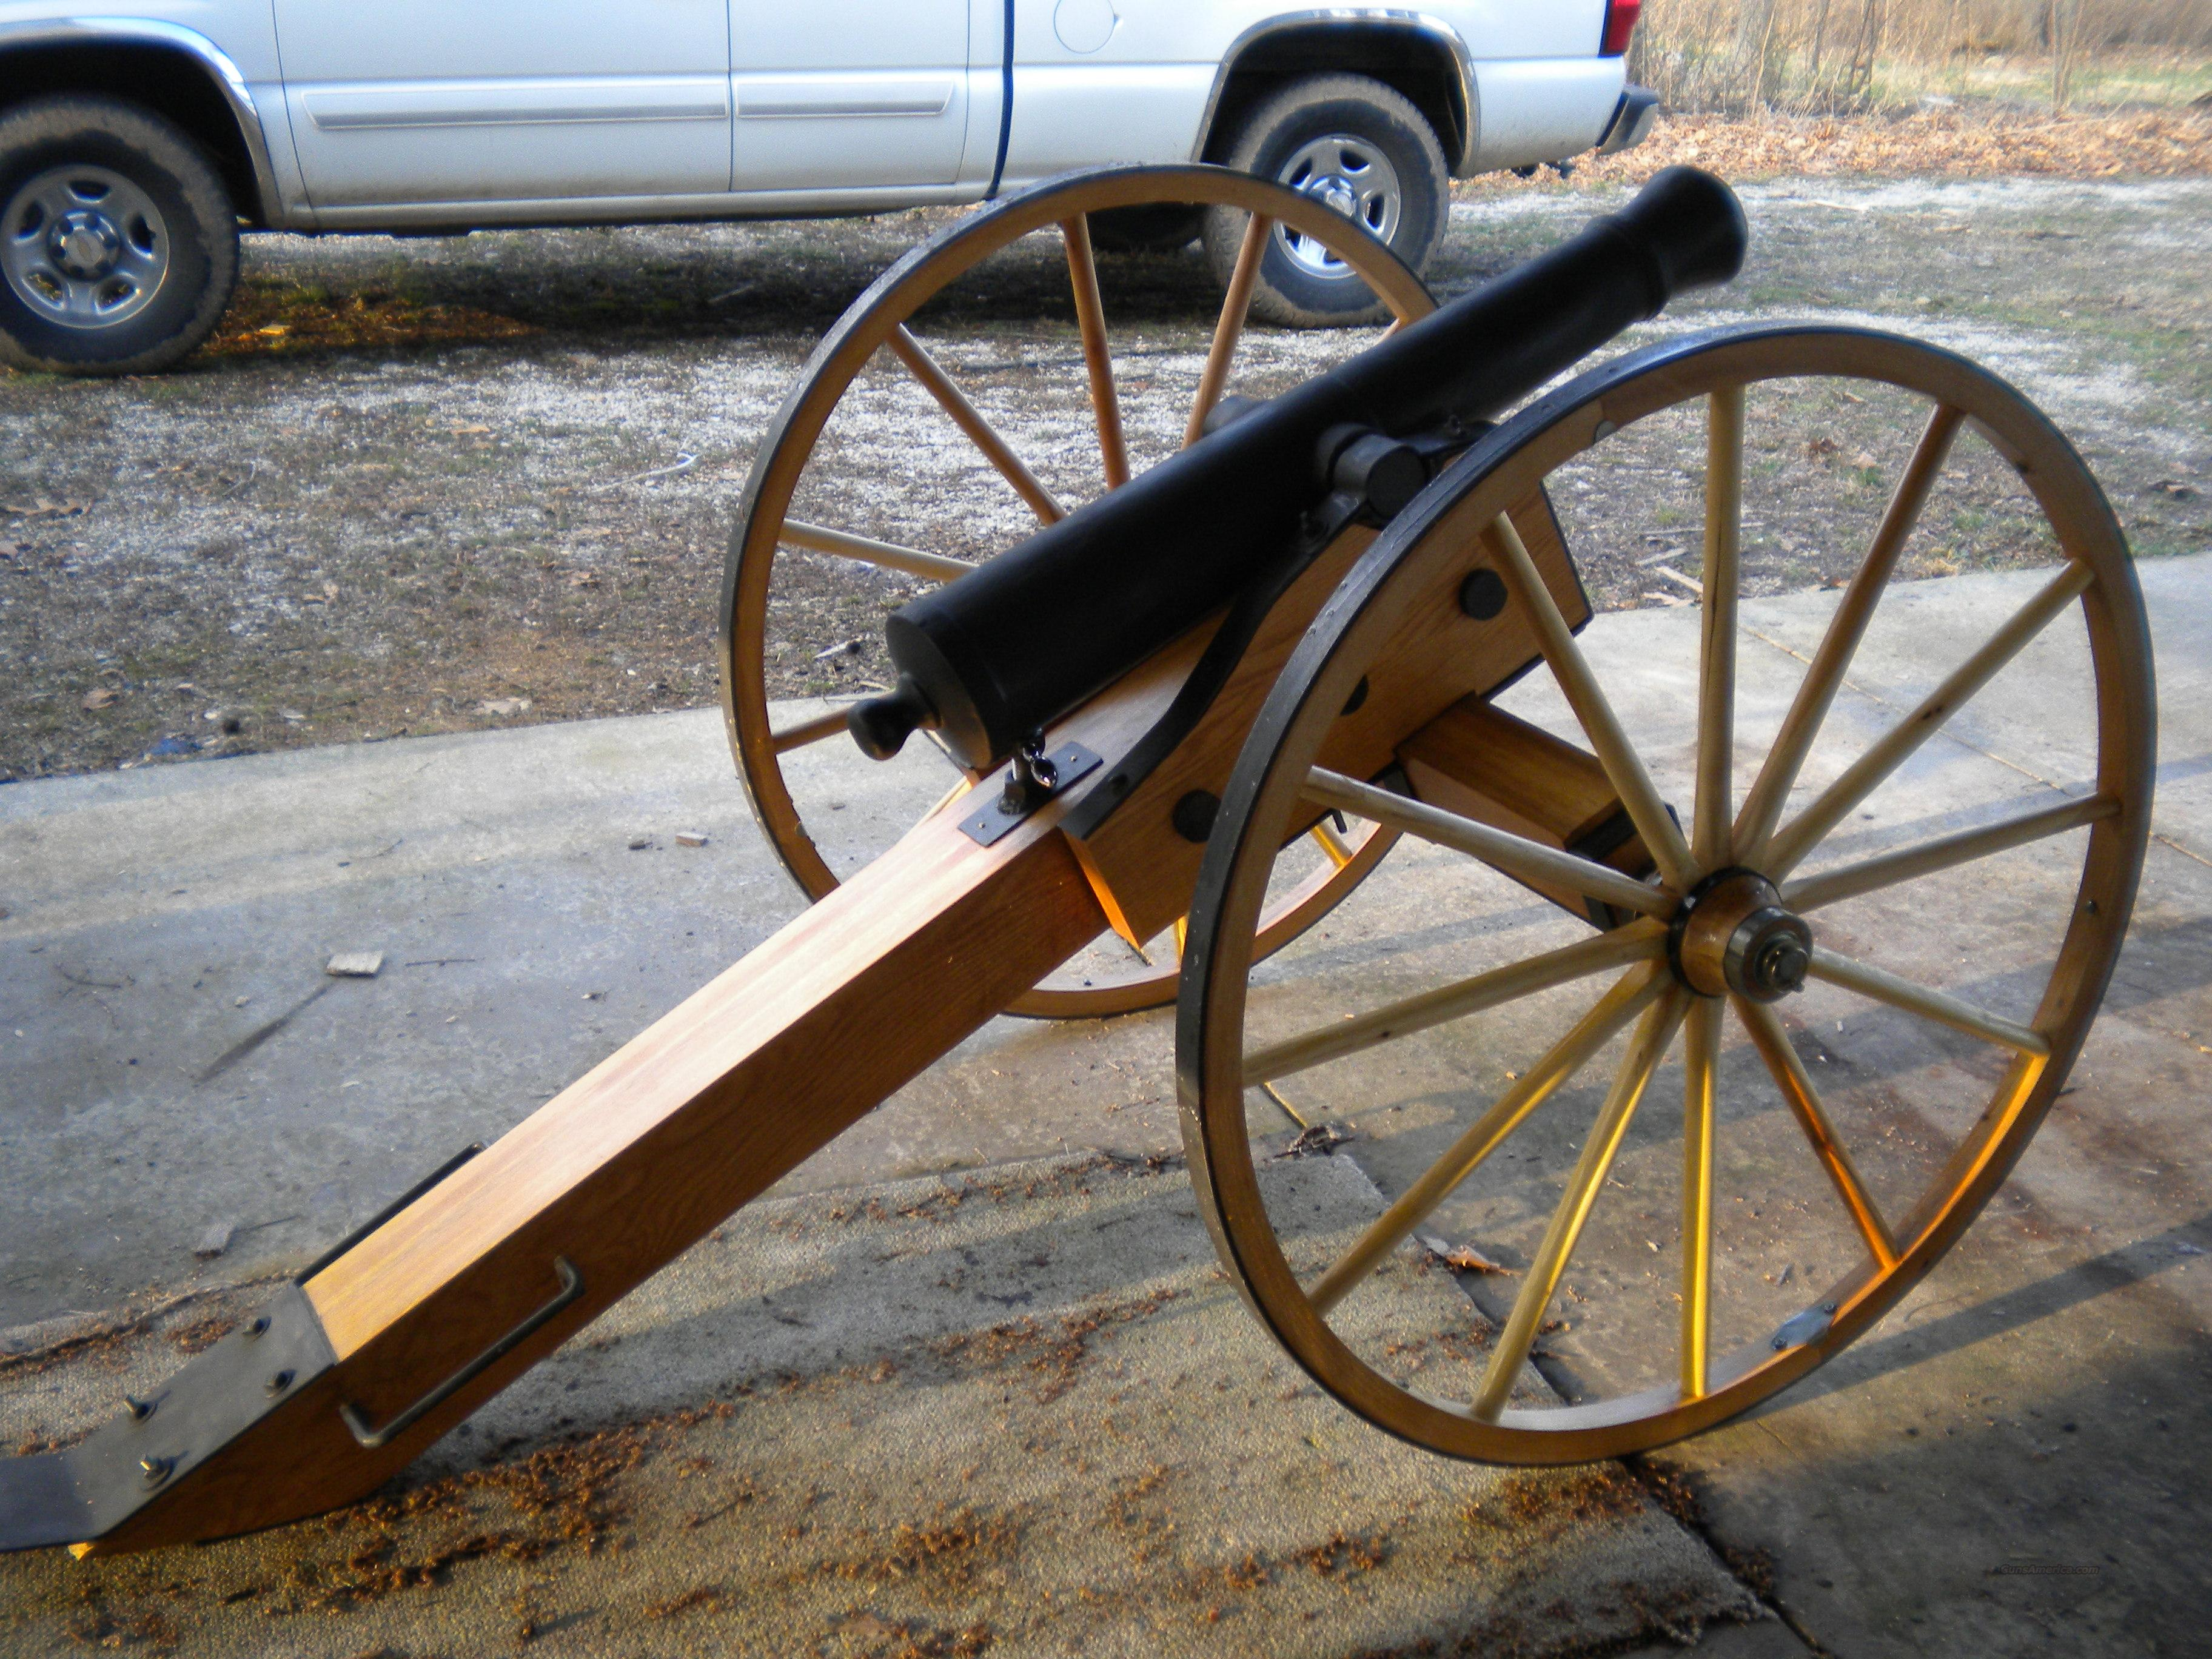 2/3 Scale Six Pounder Cannons  Guns > Rifles > Cannons > Cannons & Field Artilery